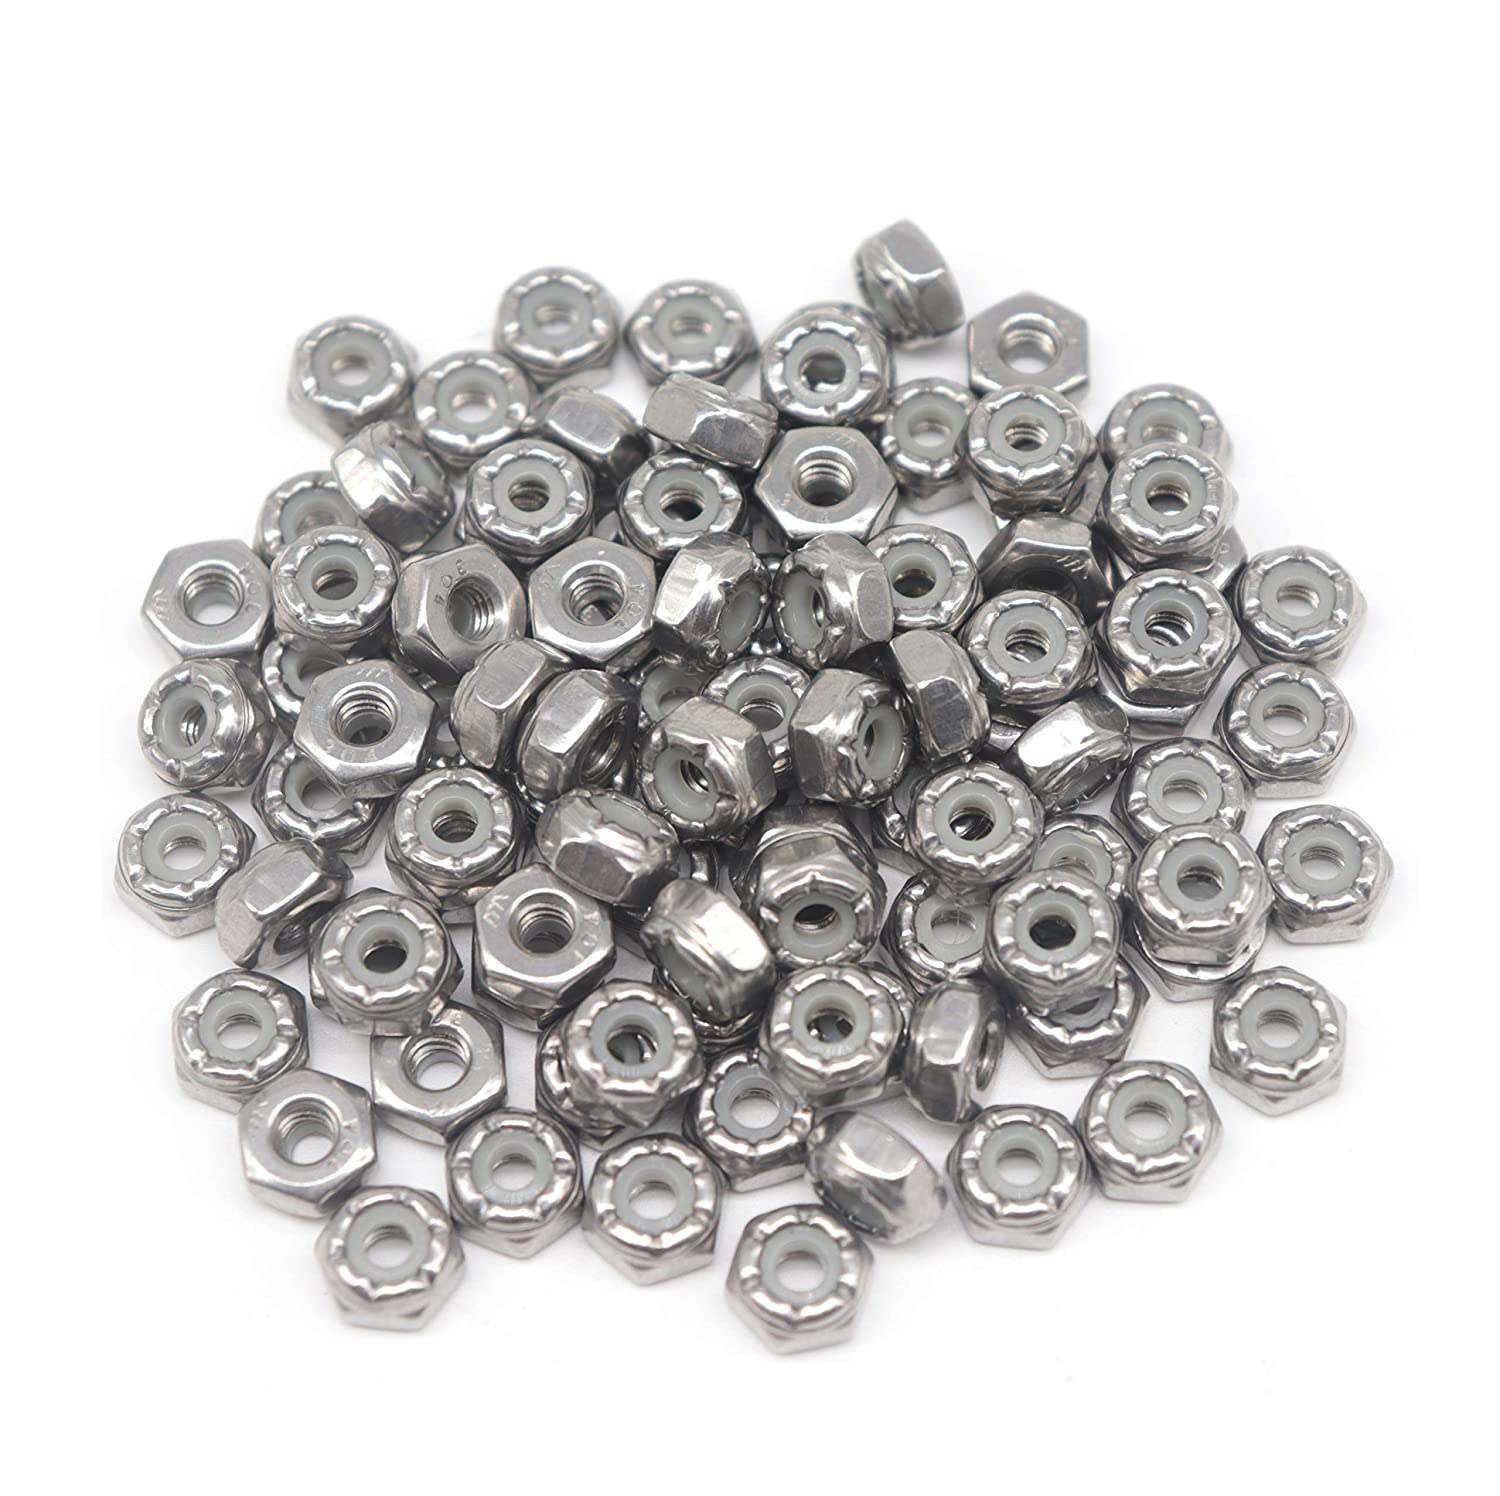 Stainless Steel binifiMux 8-32 Nylock Nylon Inserted Self Locking Nuts 100pcs